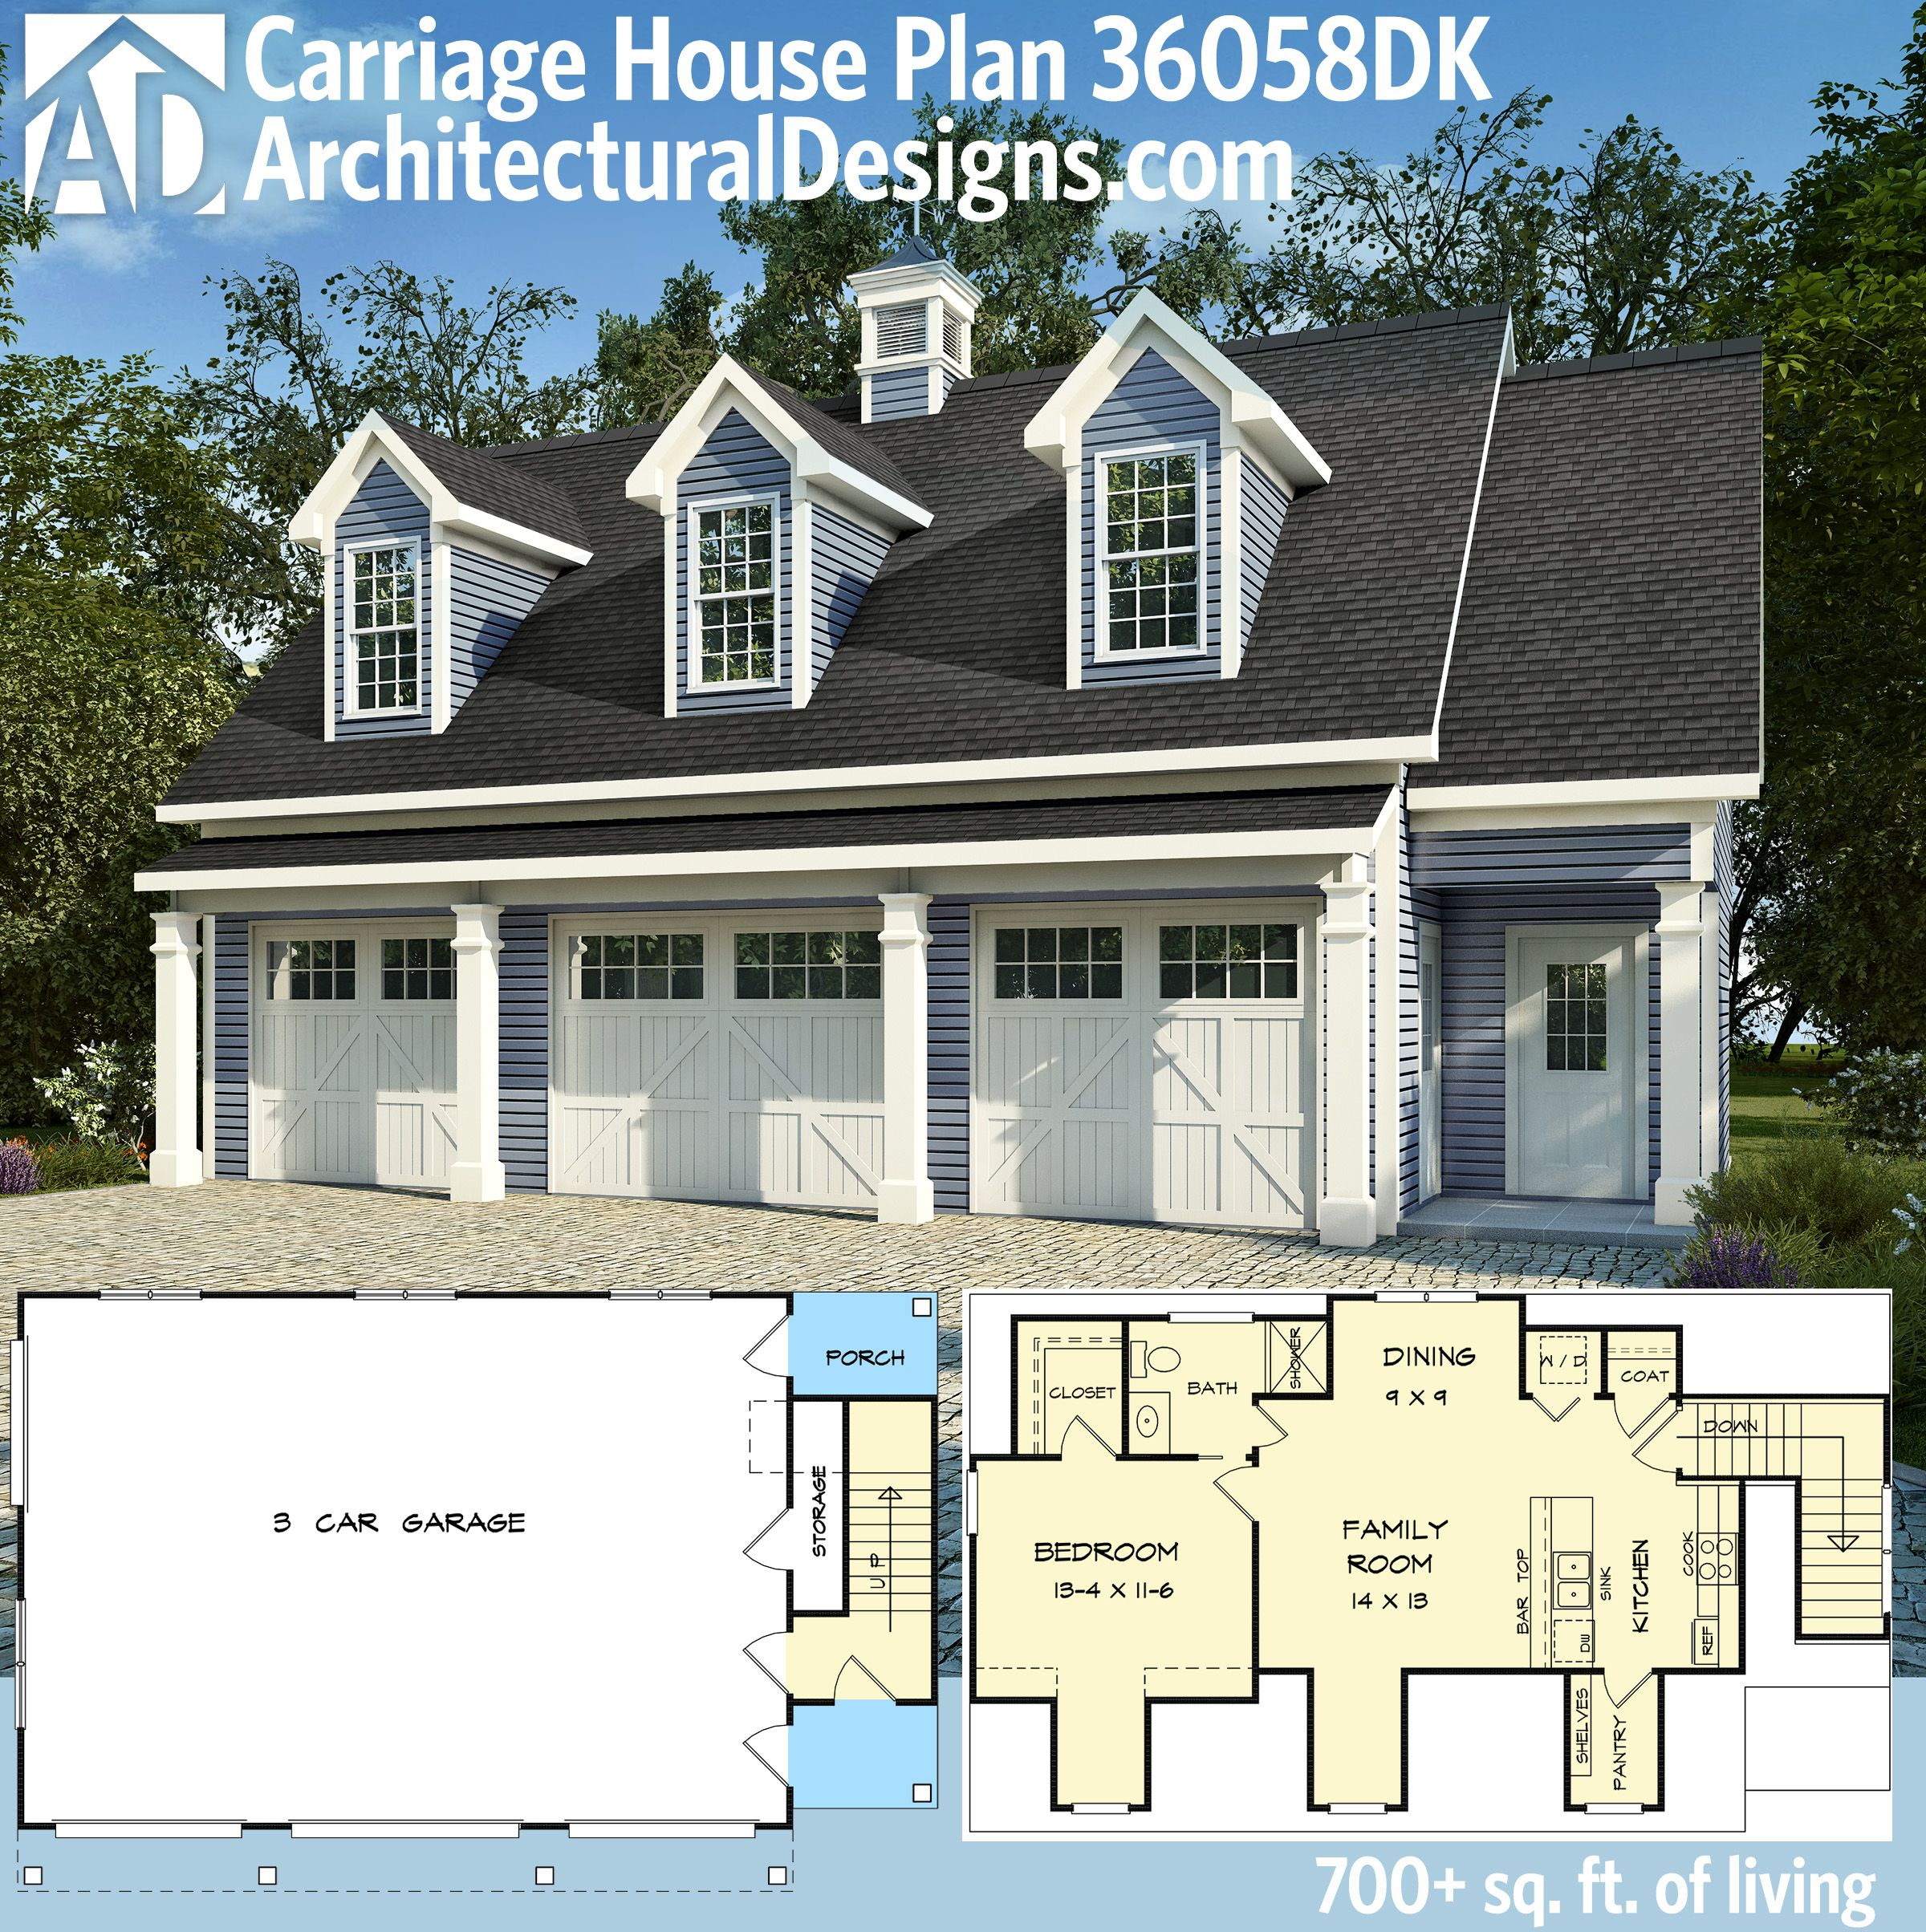 Plan 36058dk 3 car carriage house plan with 3 dormers Carriage house floor plans